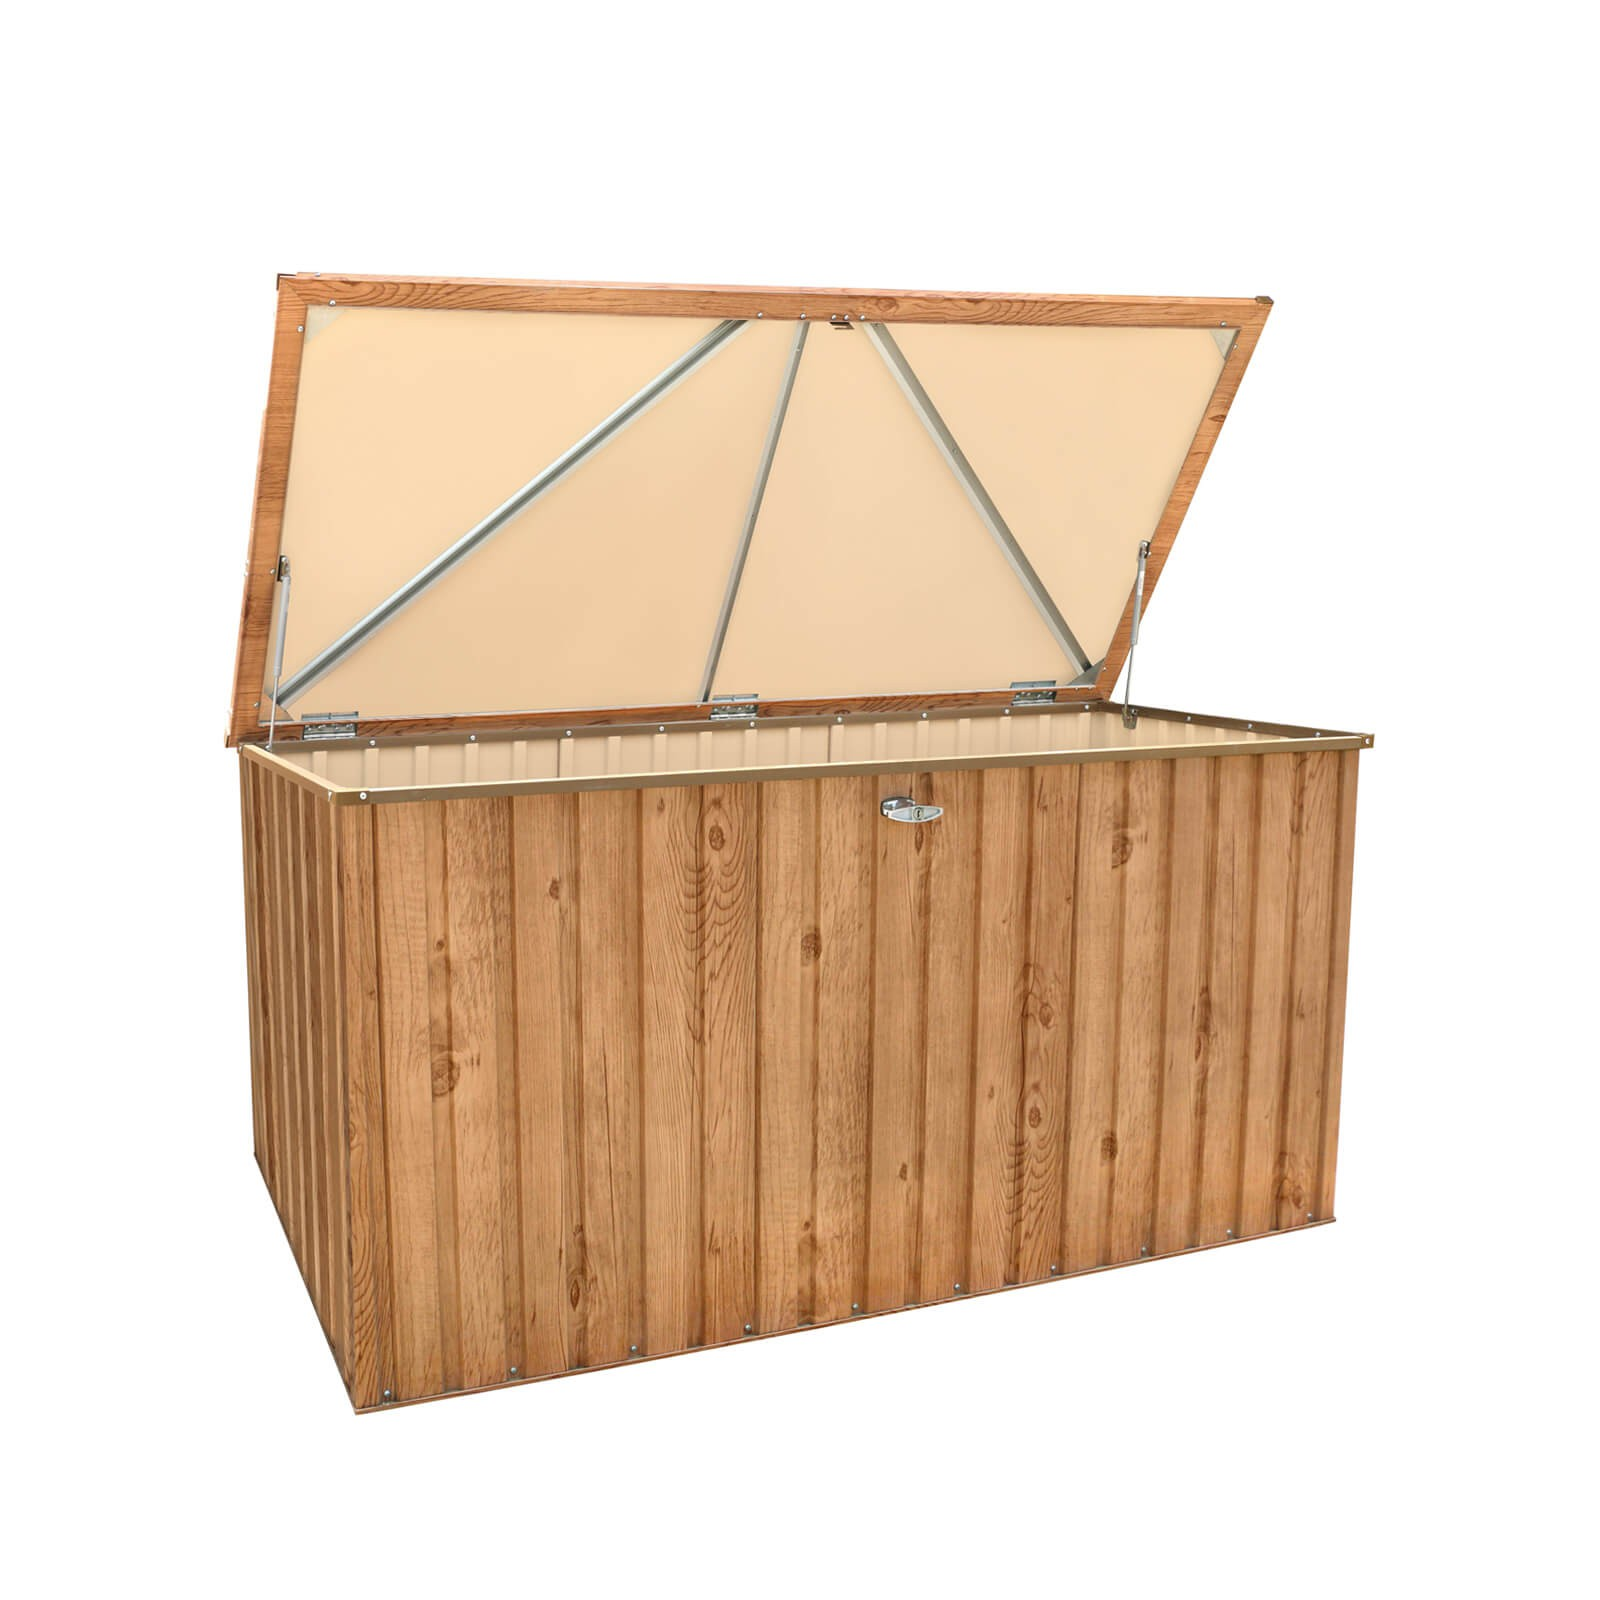 metall ger tebox gartentruhe gartenbox aufbewahrungsbox 190x90 cm holz dekor 638801712459 ebay. Black Bedroom Furniture Sets. Home Design Ideas